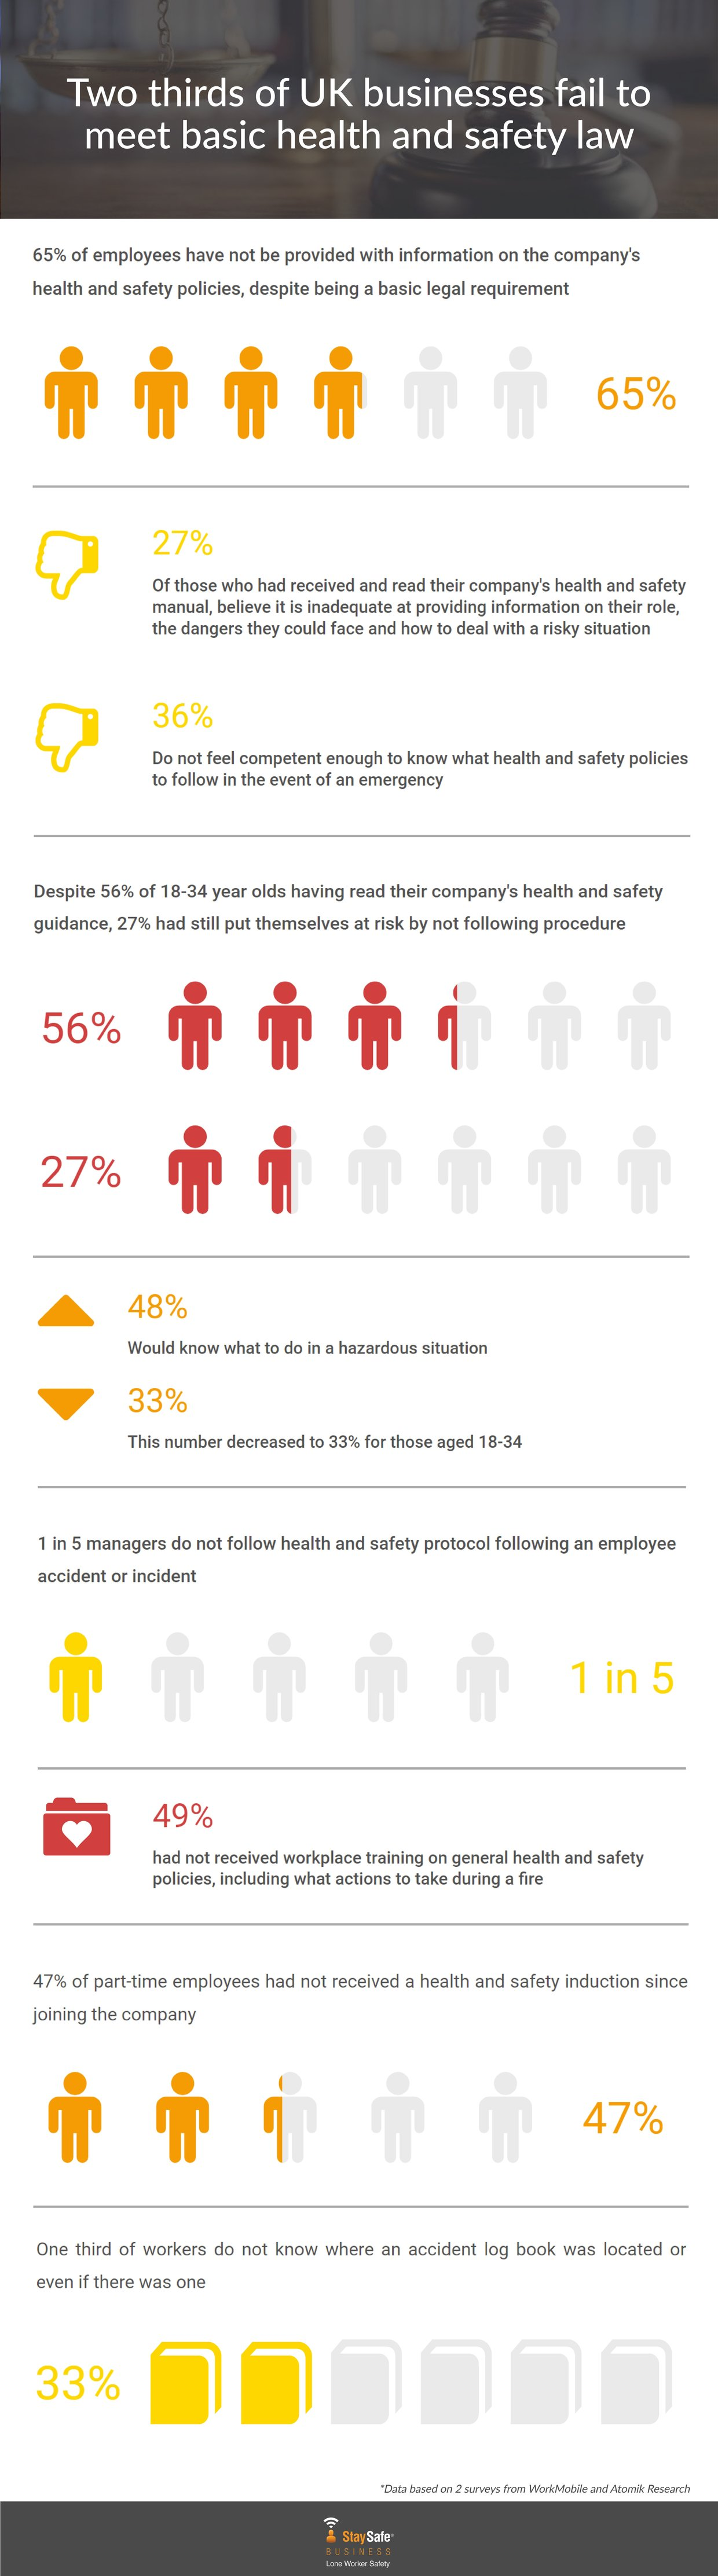 rsz_survey_statistics_infographic